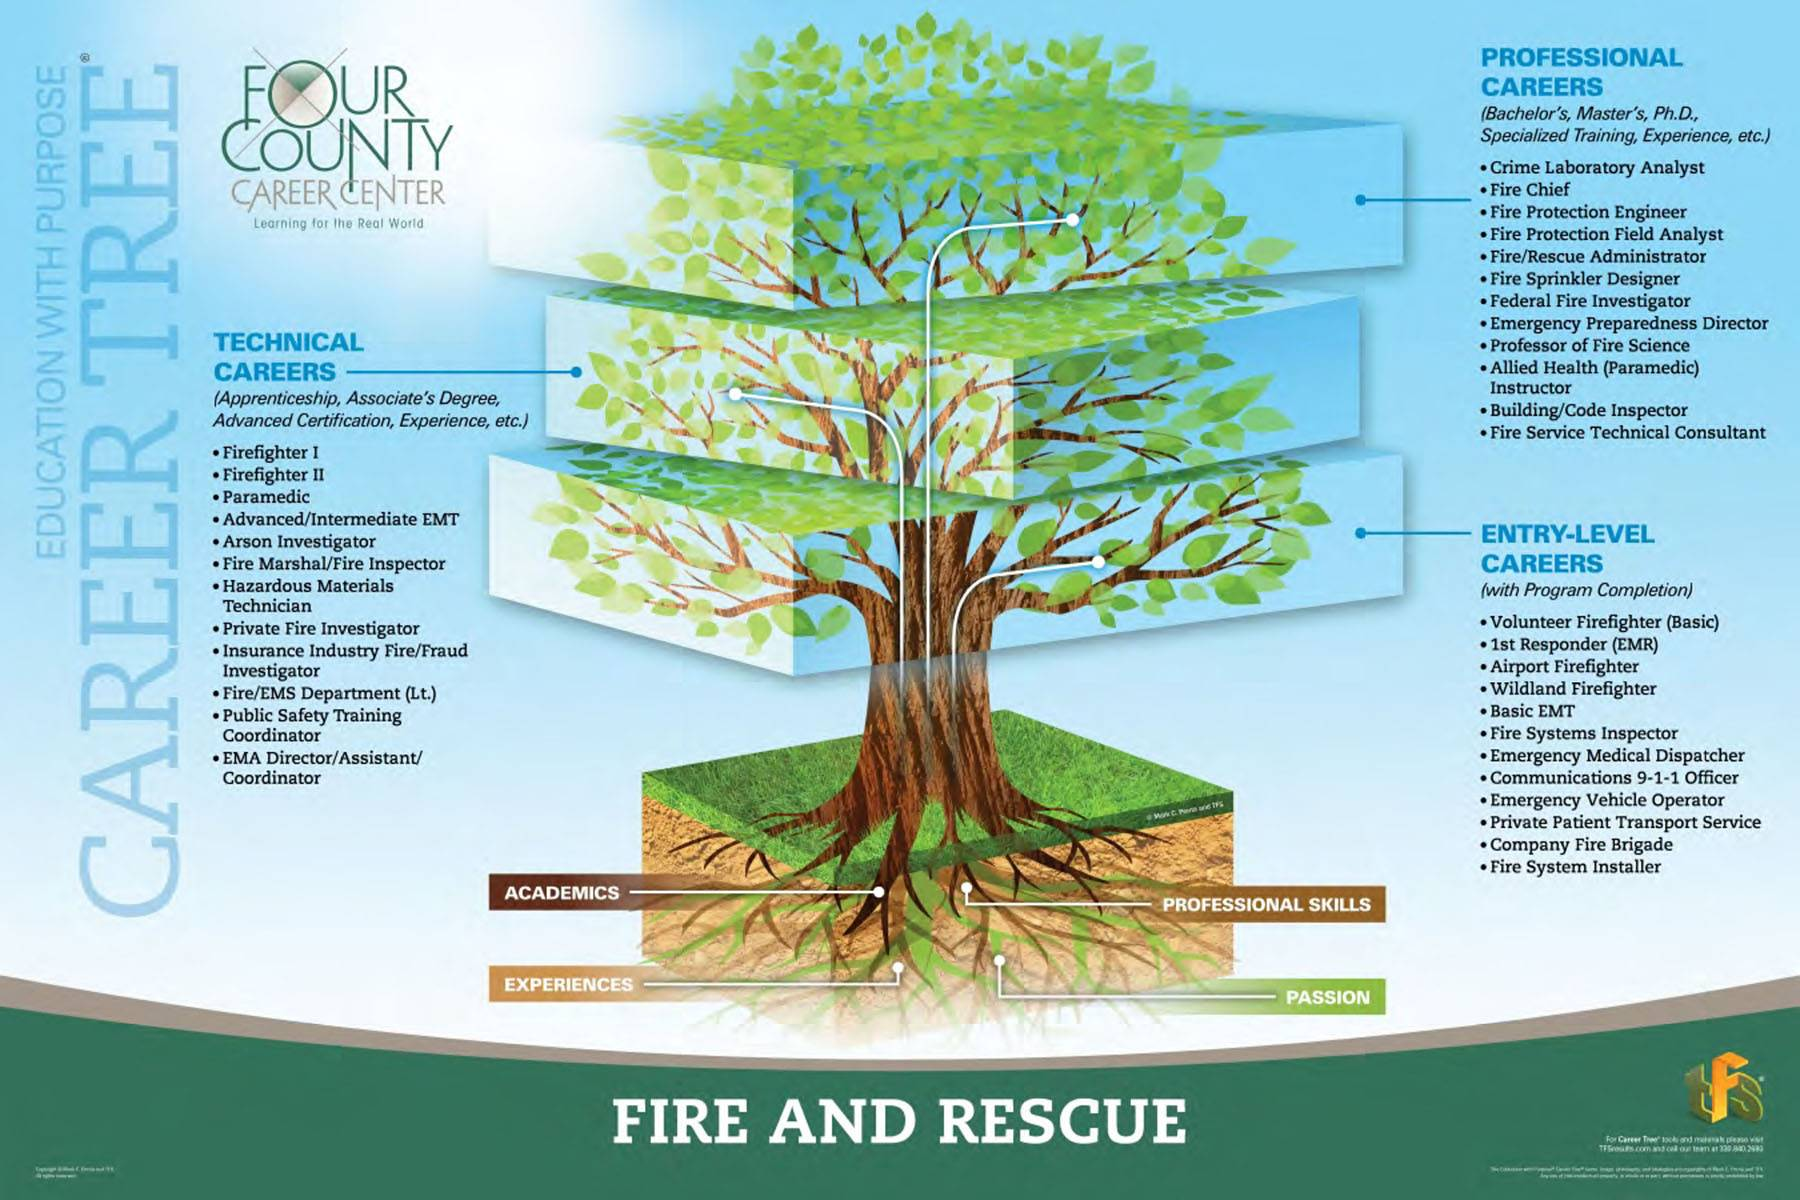 Fire and Rescue Career Tree